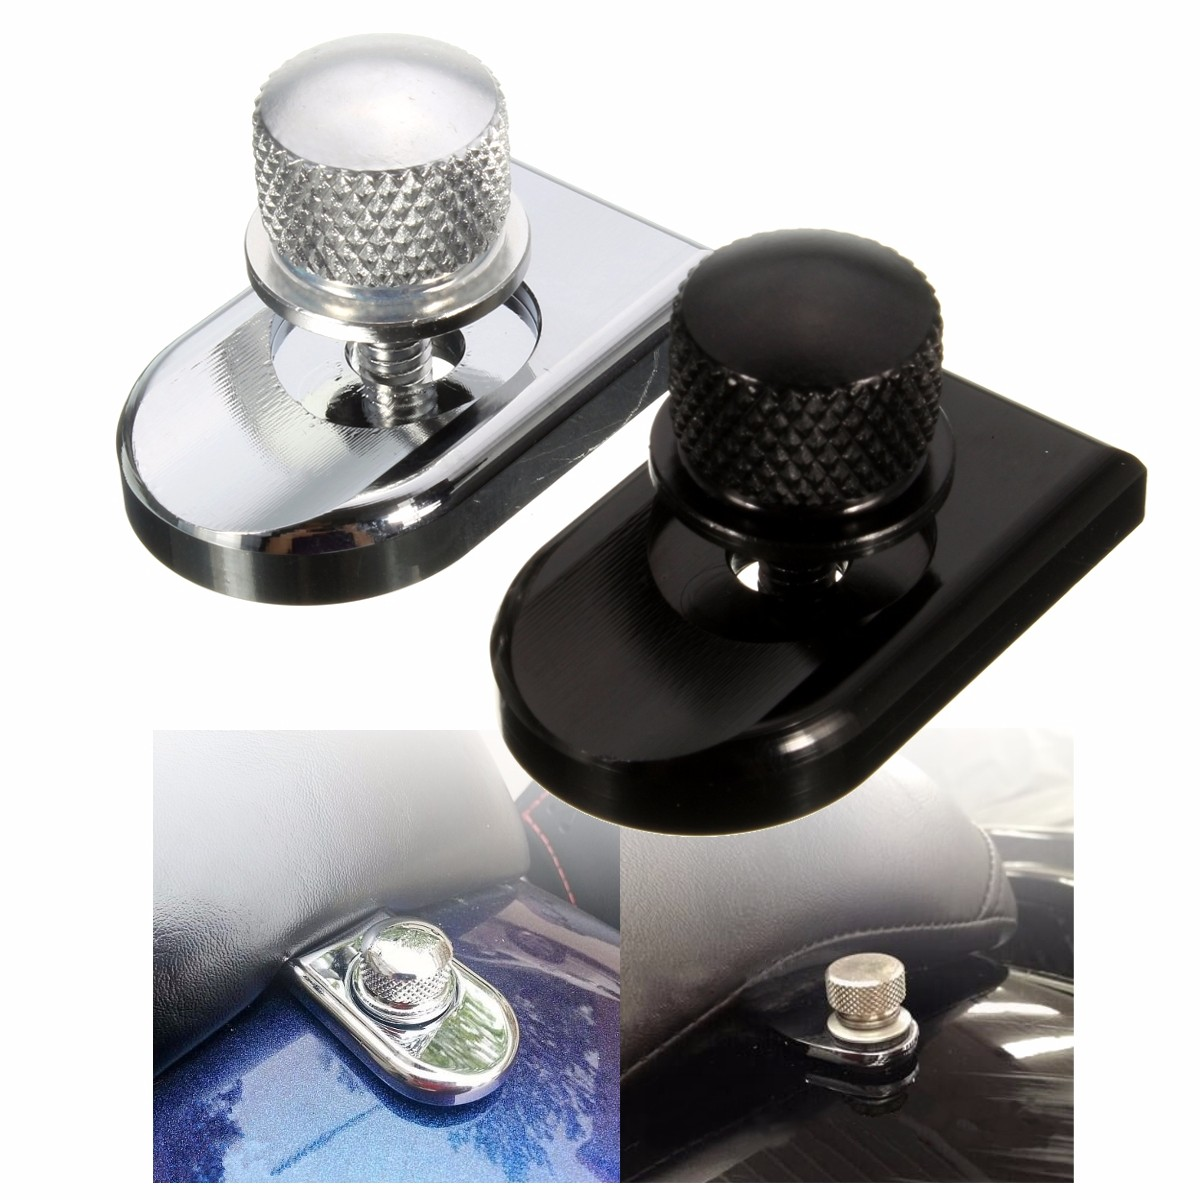 1/4-20 Motorcycle Seat Bolt Tab Screw Mount Knob Cover for Harley Sportster Dyna Fatboy Road King Softail(China)